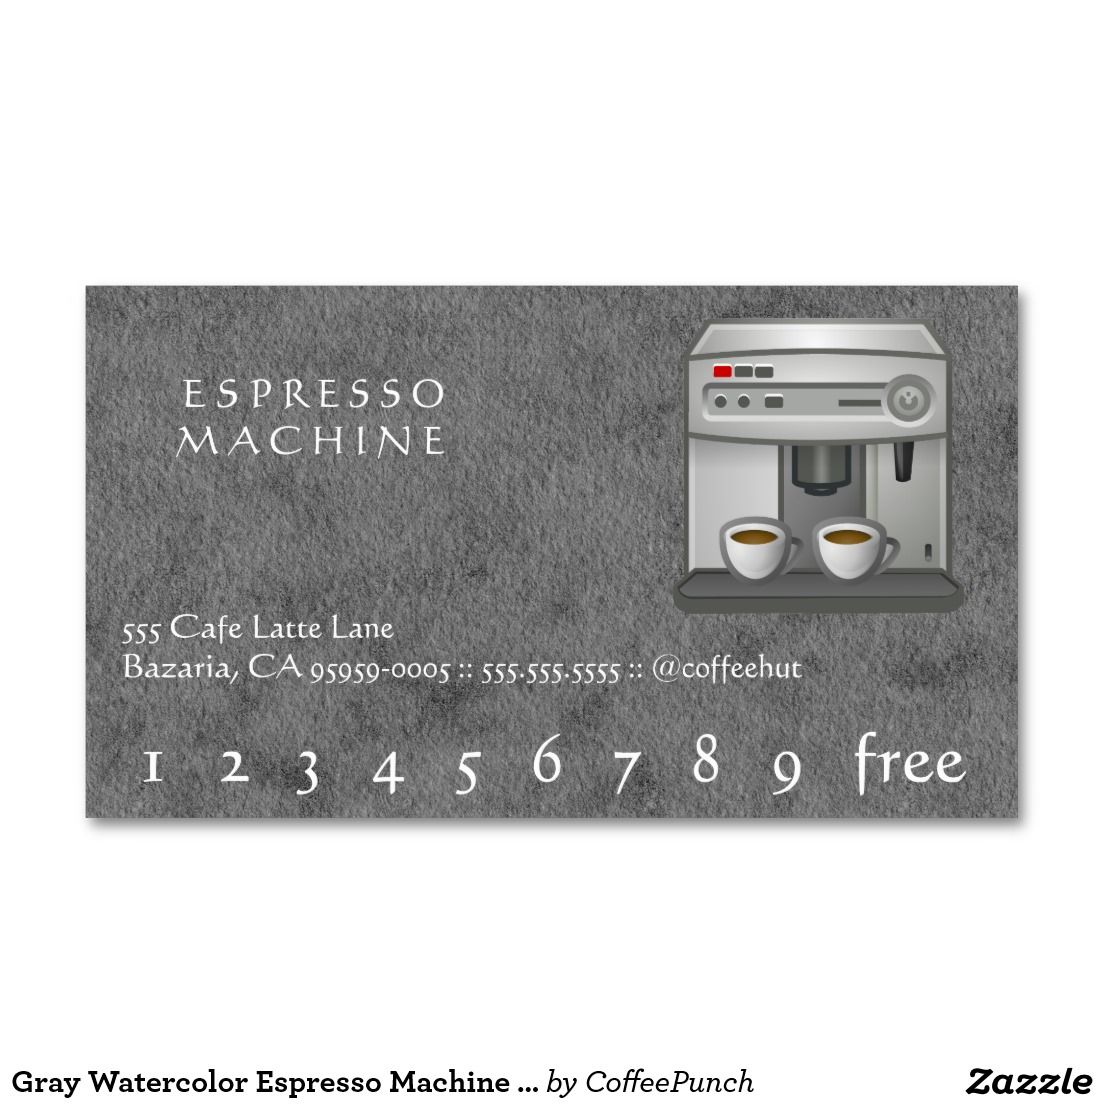 Gray Watercolor Espresso Machine Loyalty Punchcard Business Card Punch Cards Coffee Business Cards